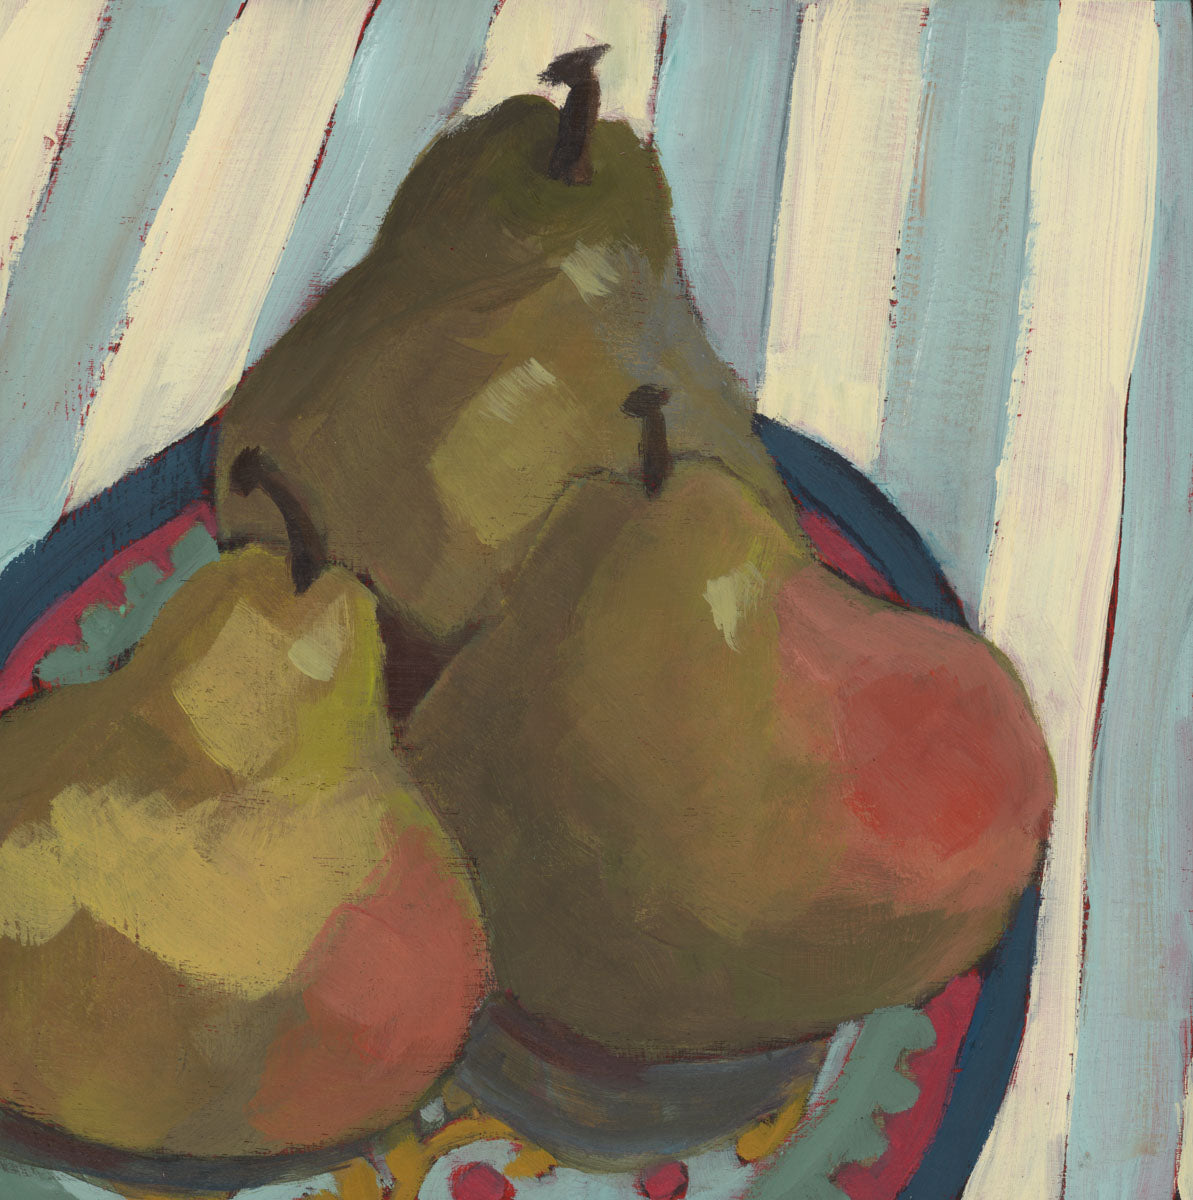 0858: A Trinity of Pears